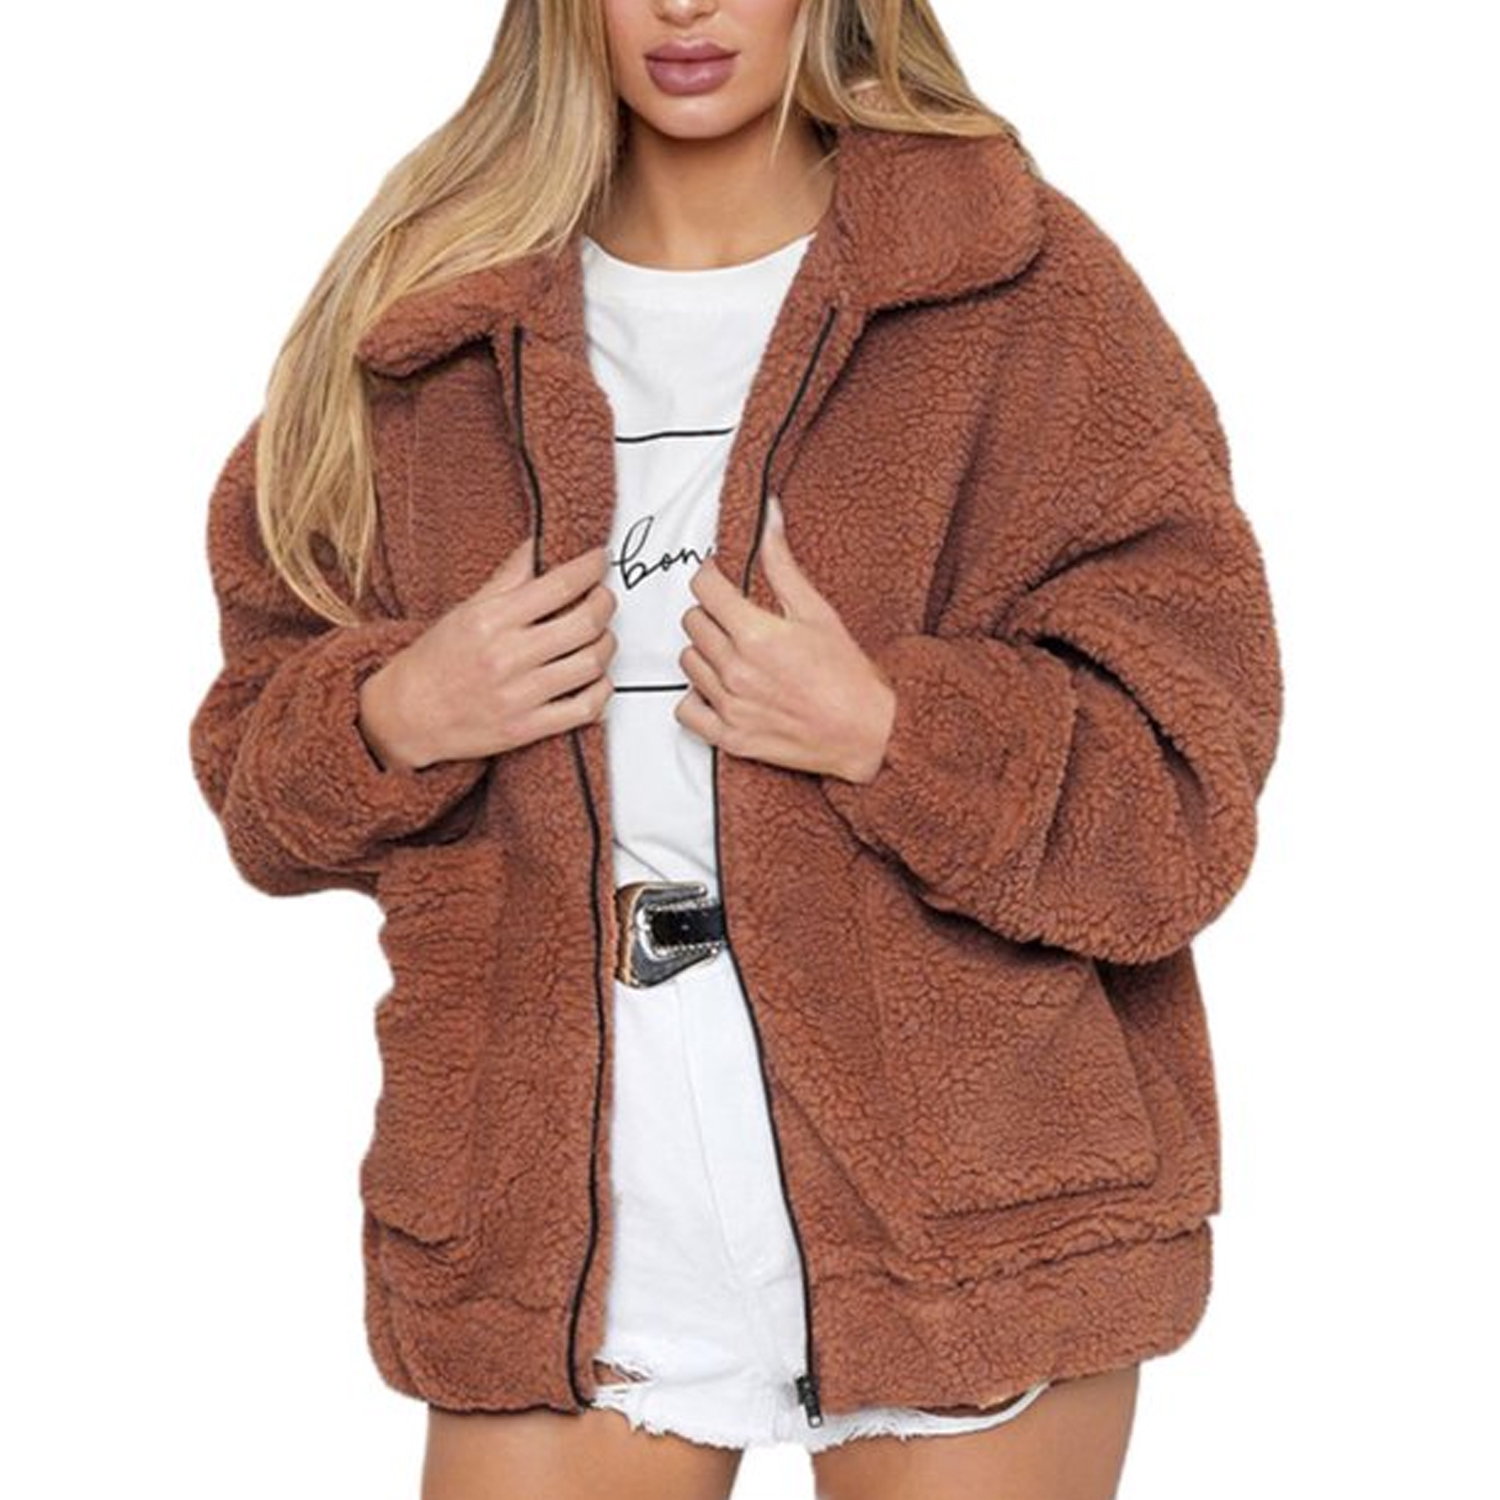 woman wearing brown teddy jacket, graphic tee, and white shorts